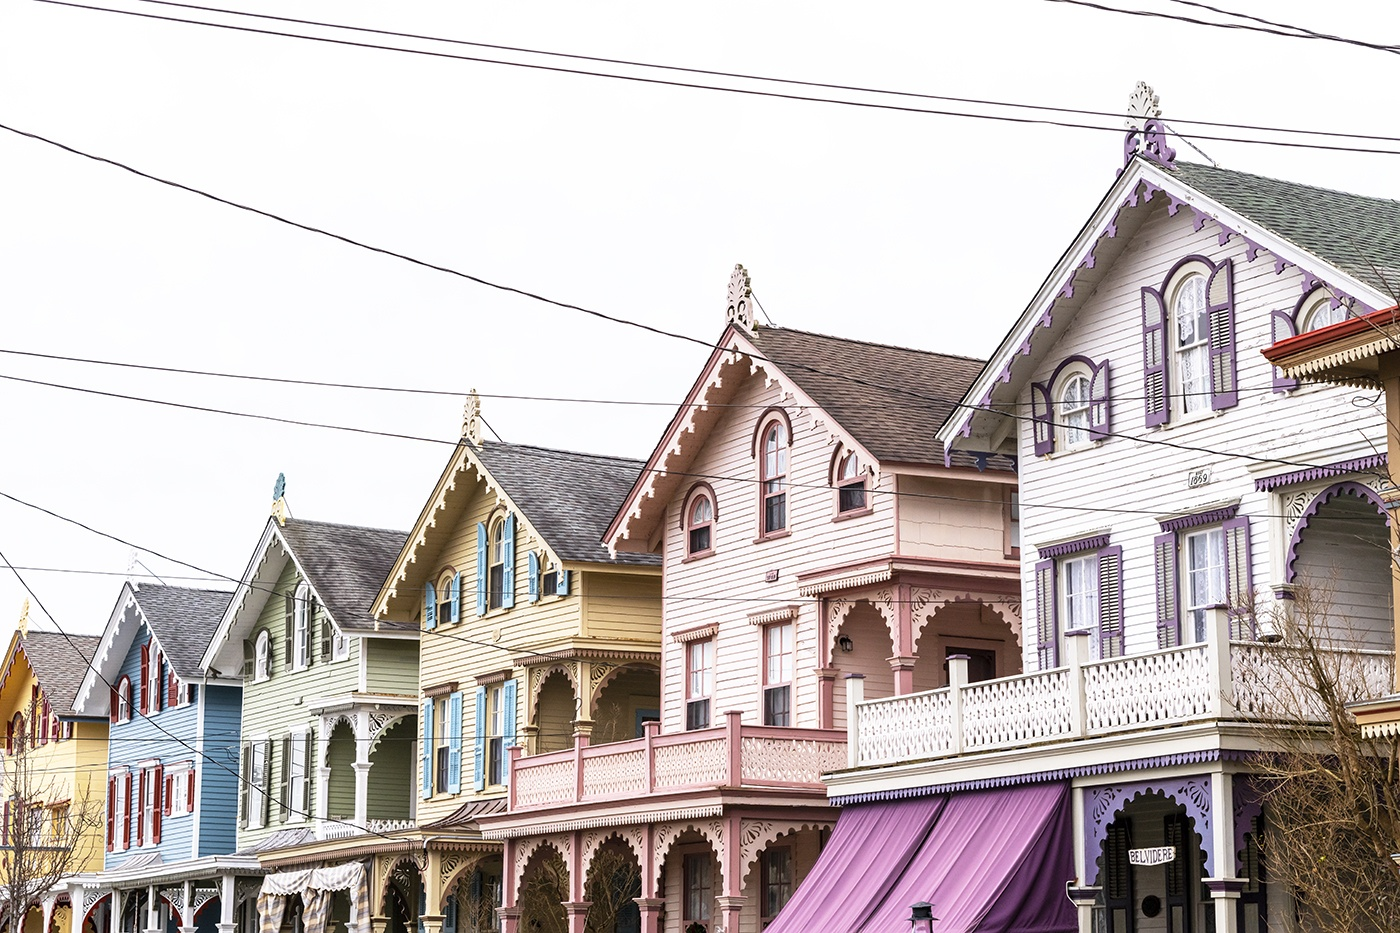 The tops of colorful Victorian houses in a row.